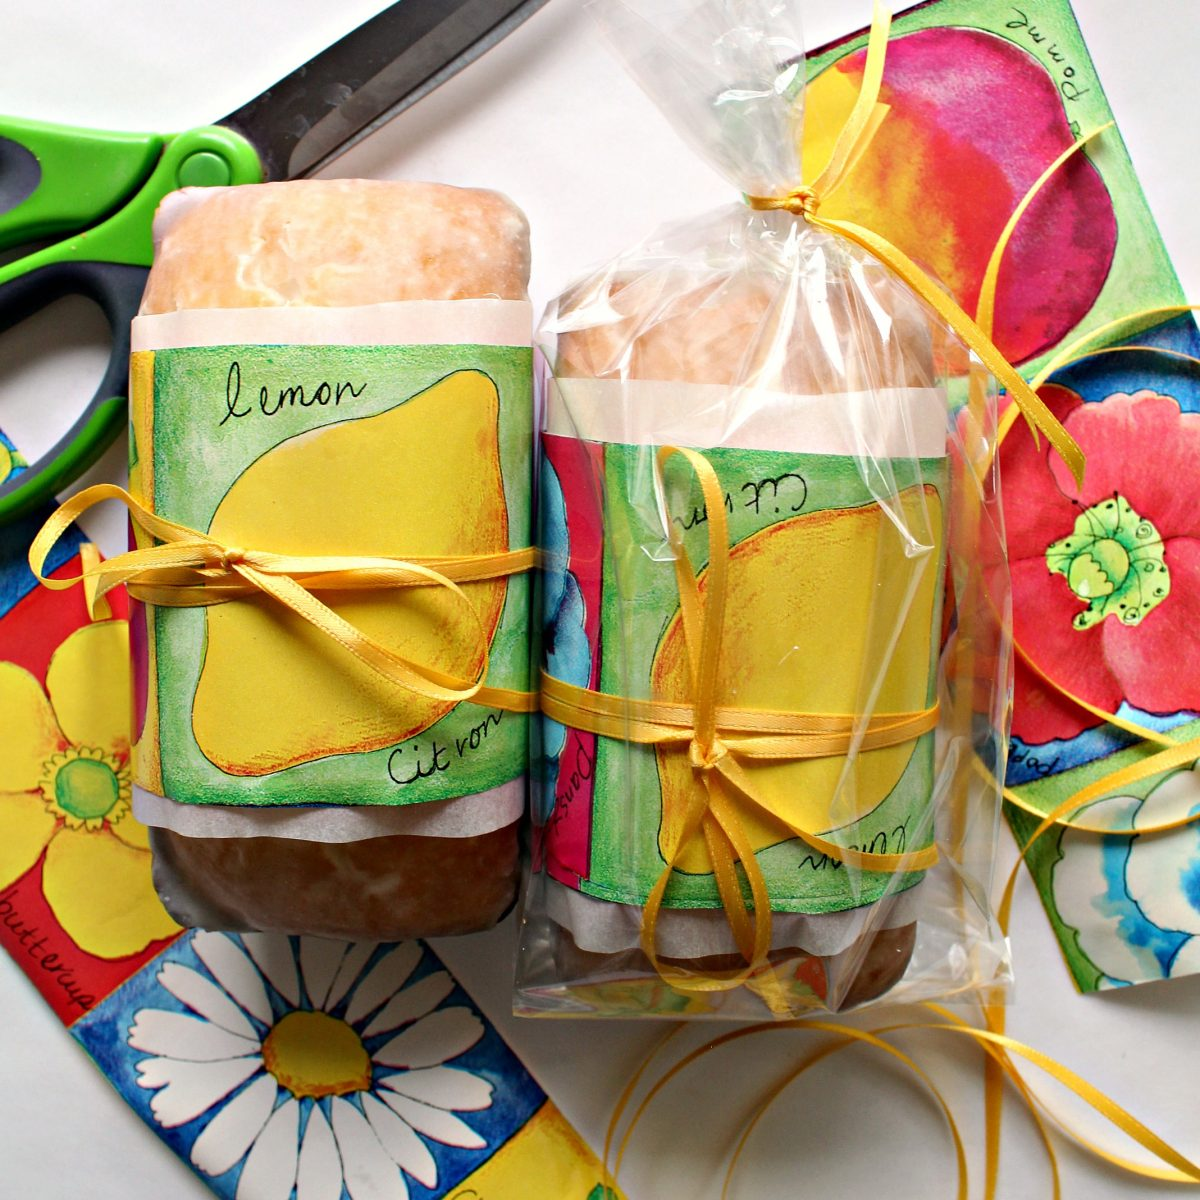 Two Lemon Loaves wrapped for gifting with wrapping paper and ribbon.